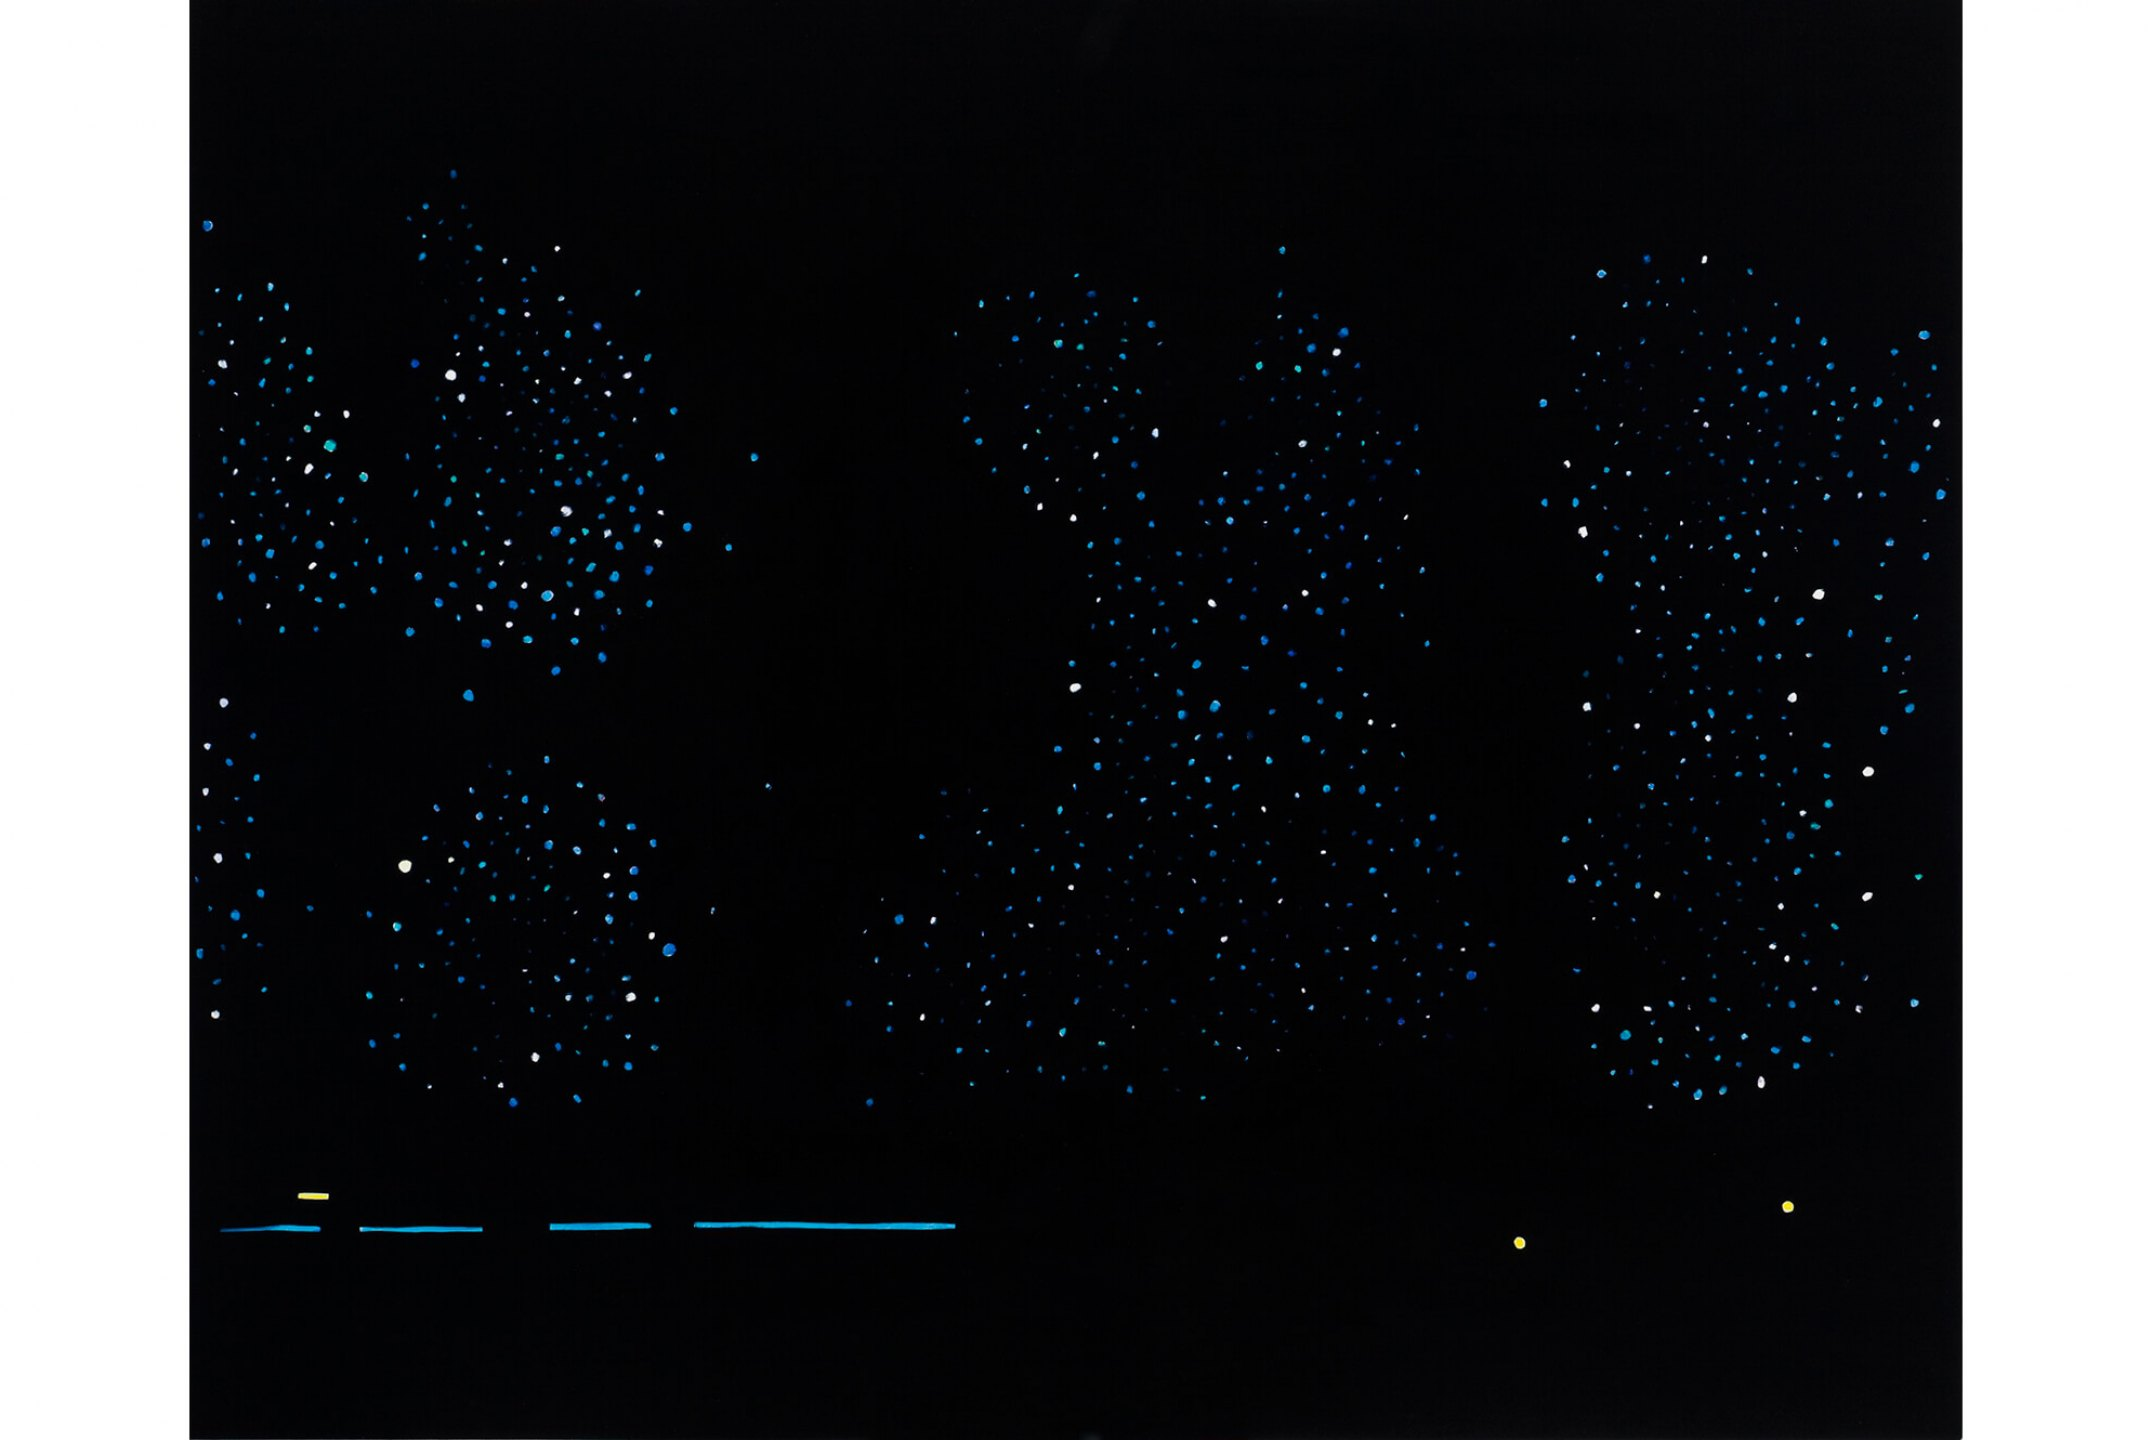 Patricia Leite, <em>Untitled (Night</em>), 2010, oil on wood, 90 × 110 cm - Mendes Wood DM